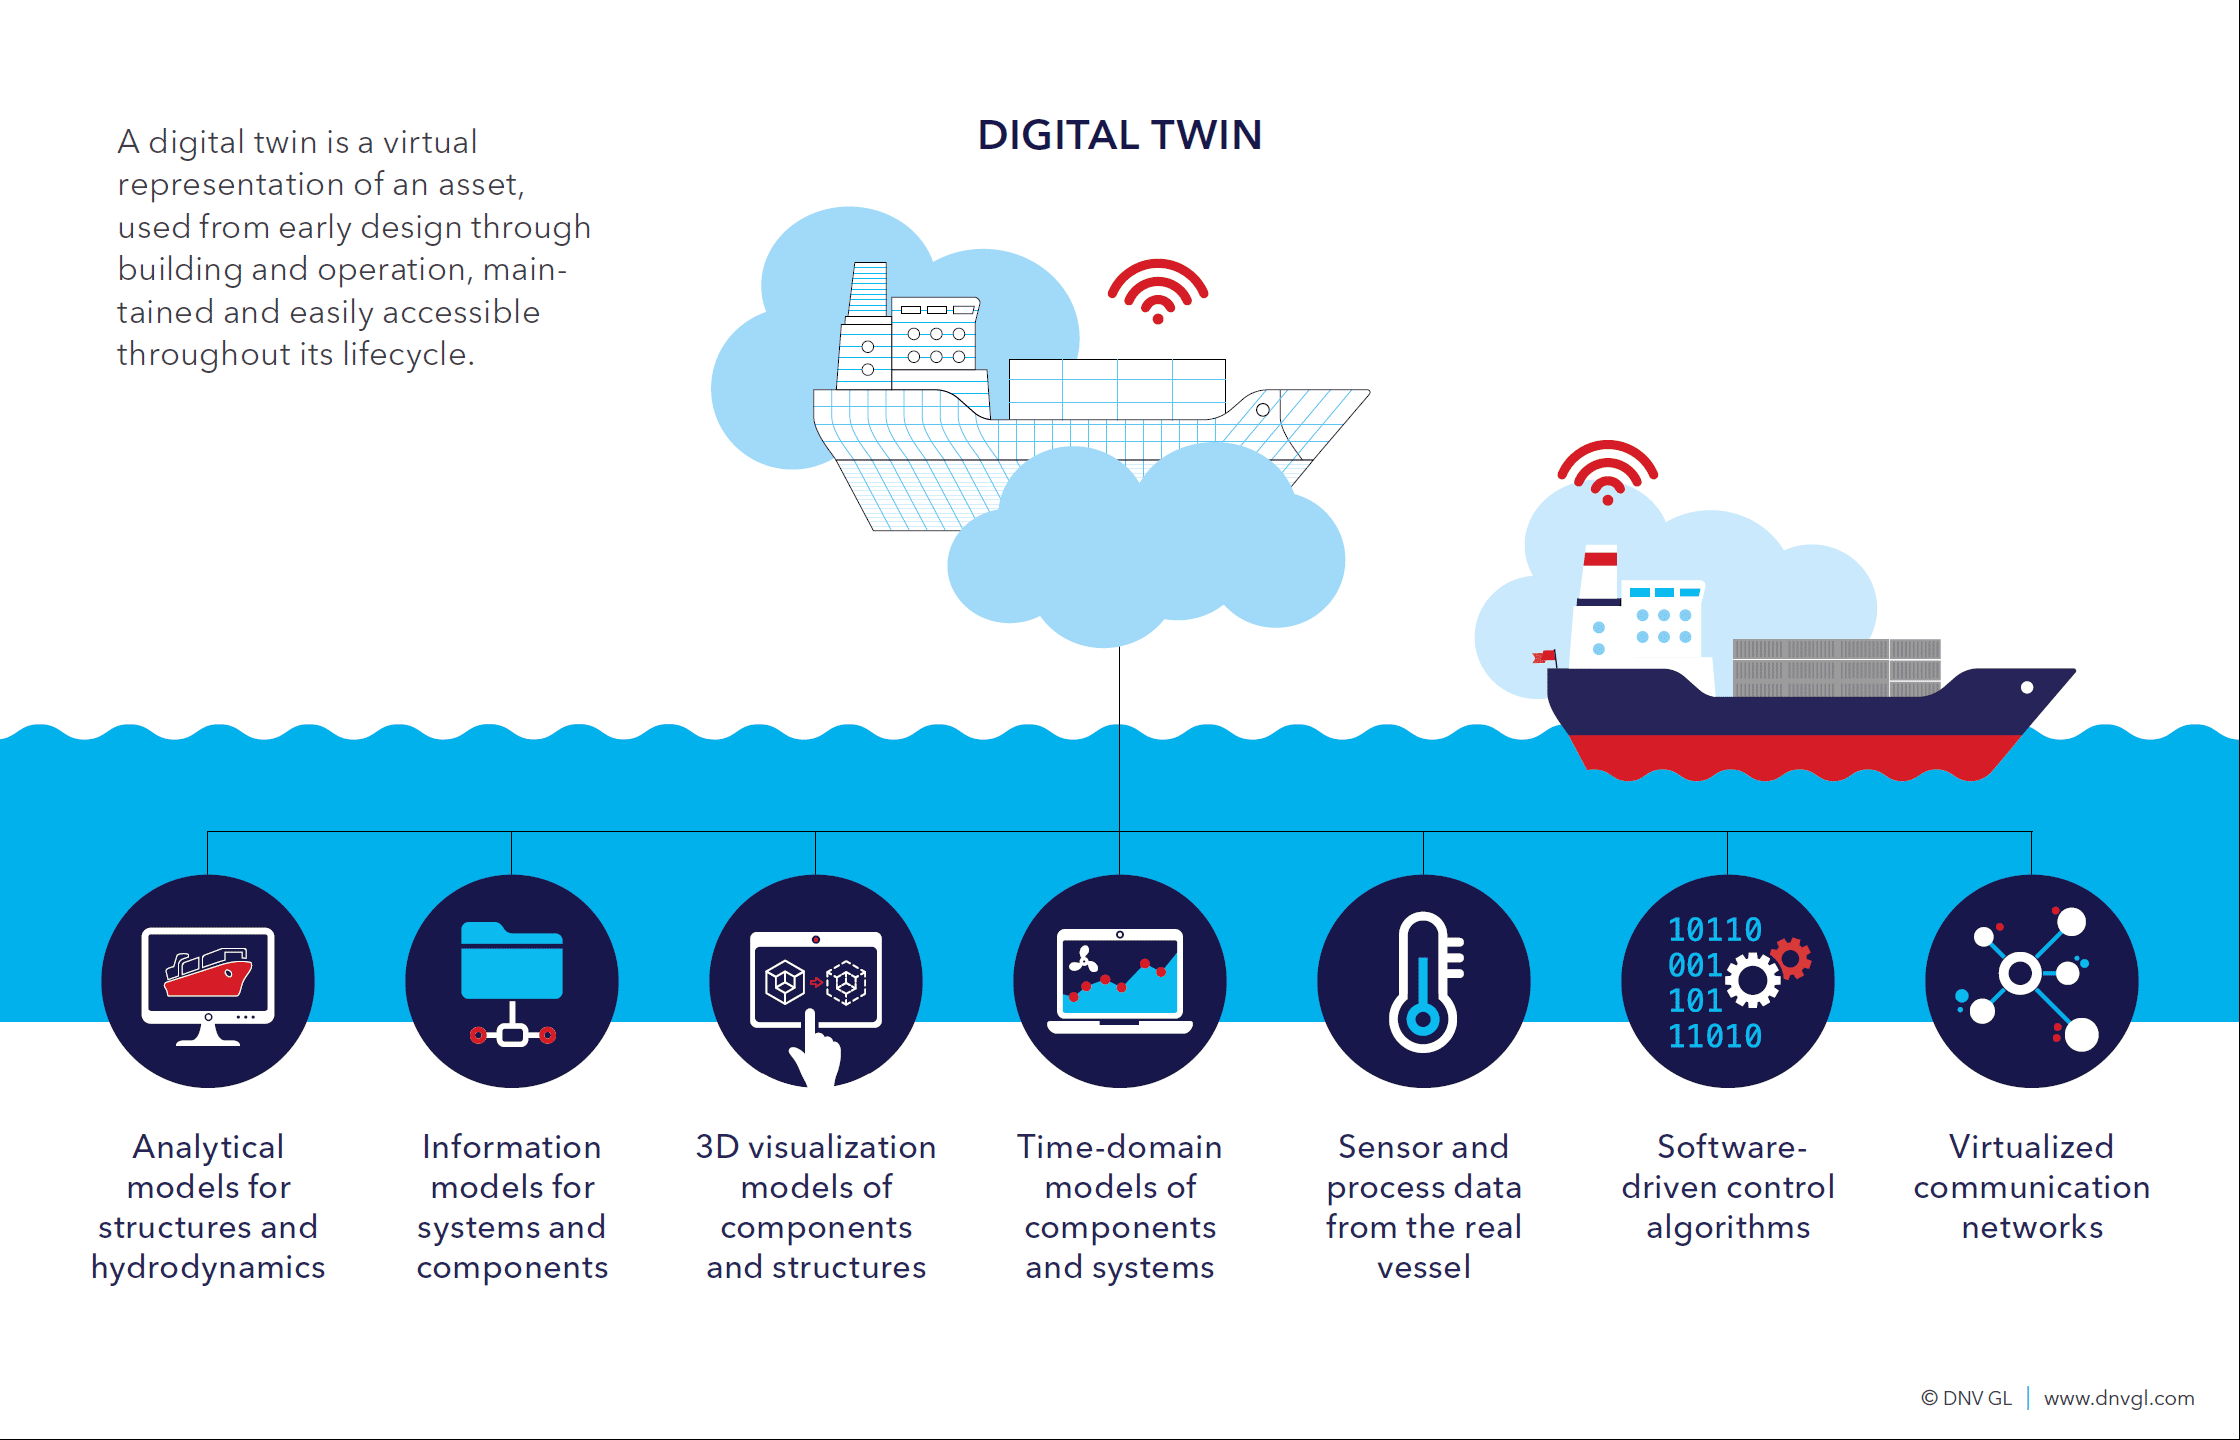 Digital twin infographic